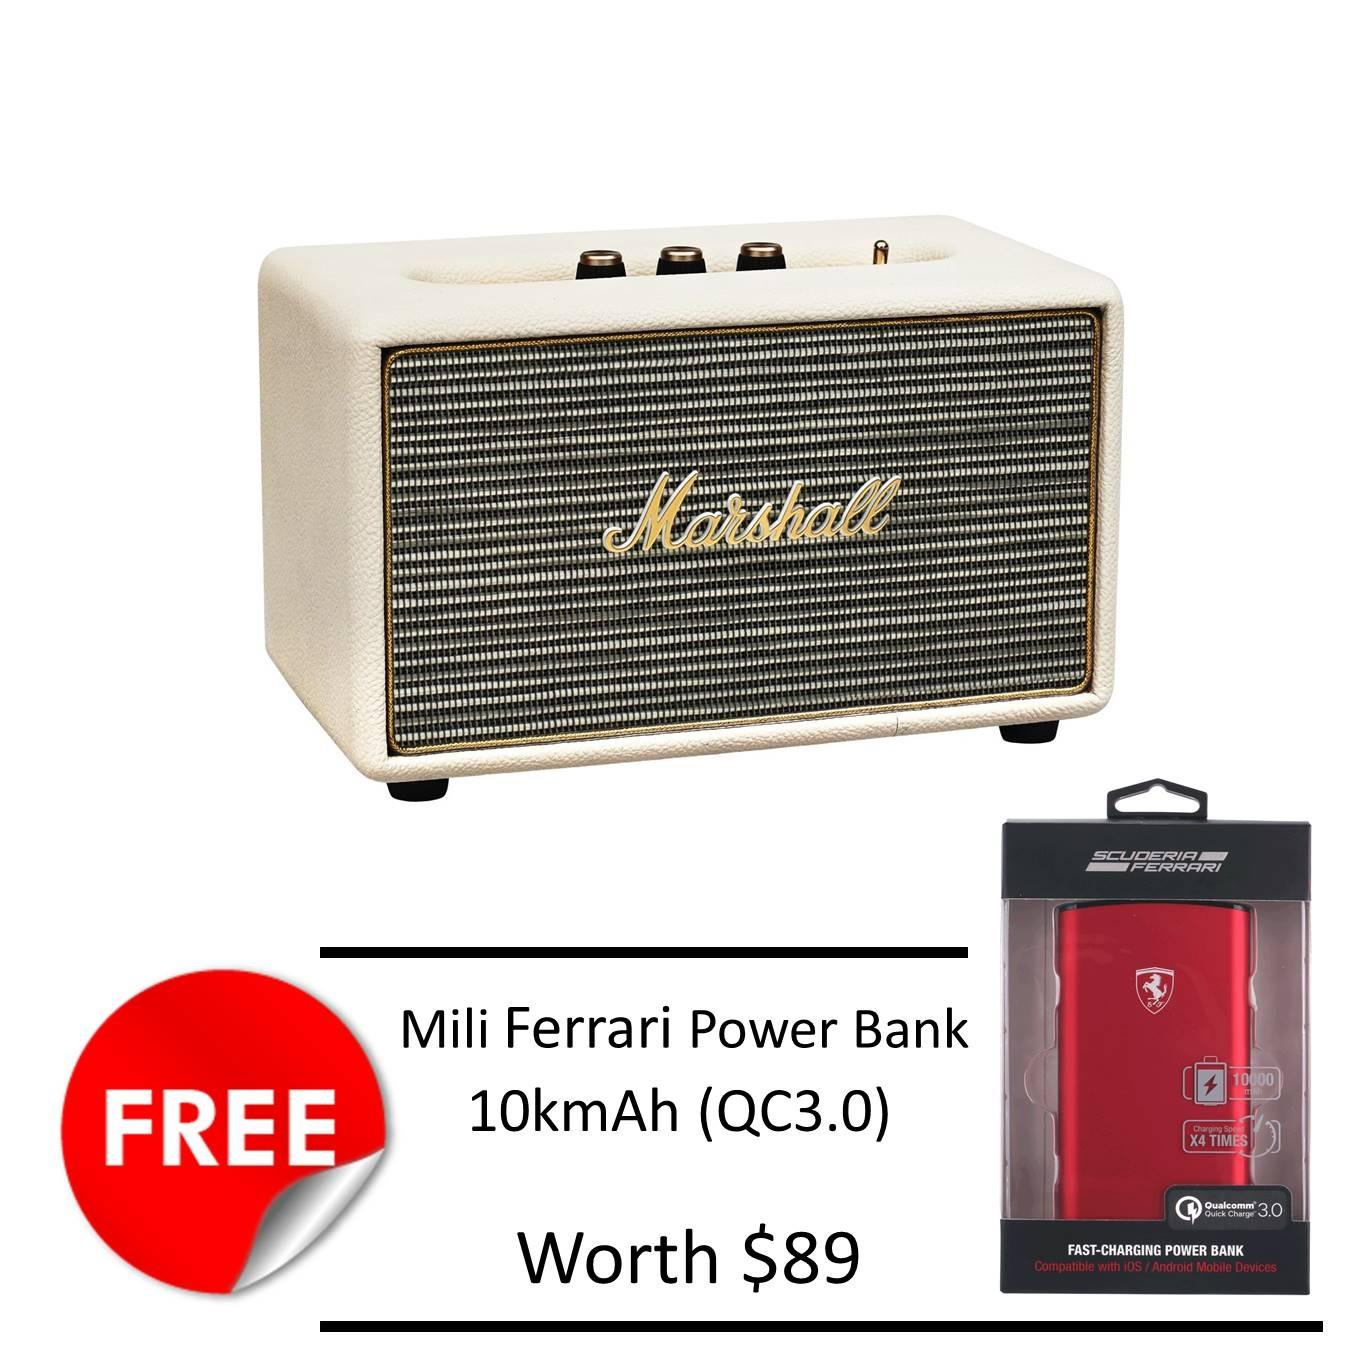 Review Marshall Stanmore Bluetooth Speaker Cream Free Mili Ferrari 10Kmah Powerbank Jbl On Singapore